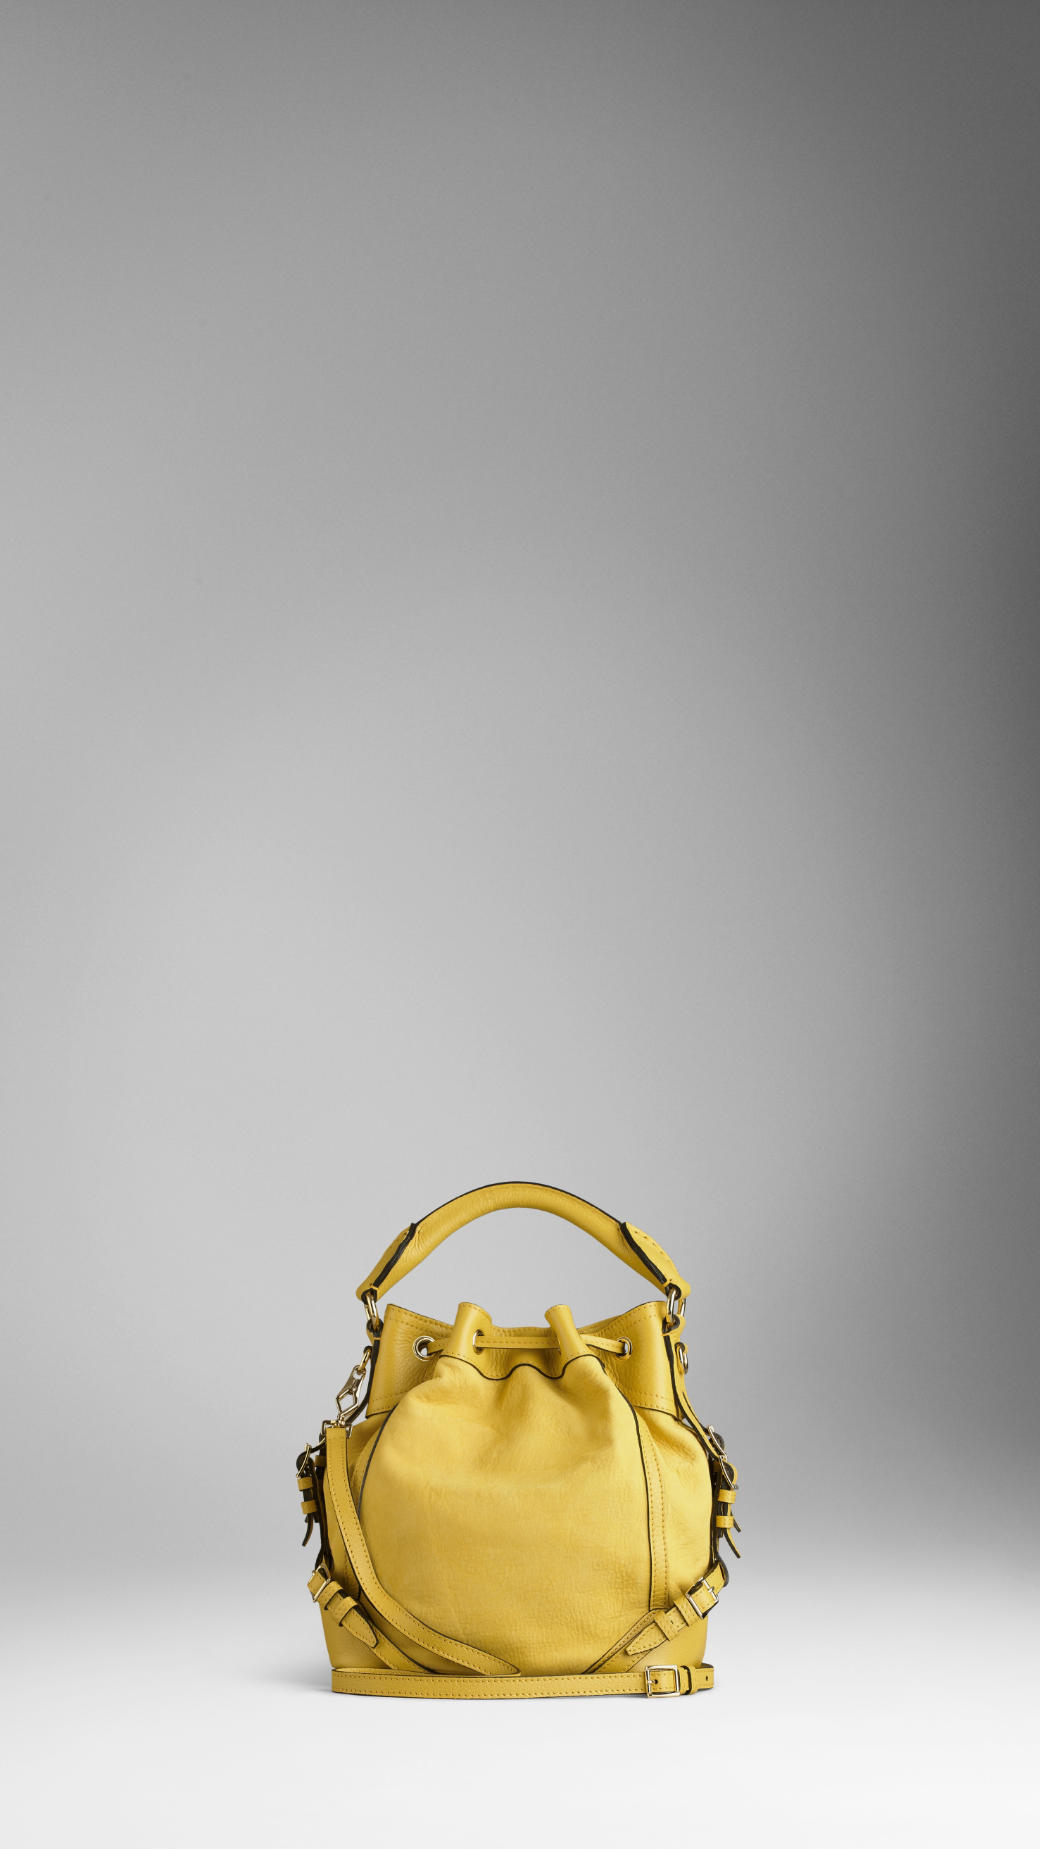 Lyst - Burberry Small Grainy Leather Crossbody Bag in Yellow ac7836f40505a